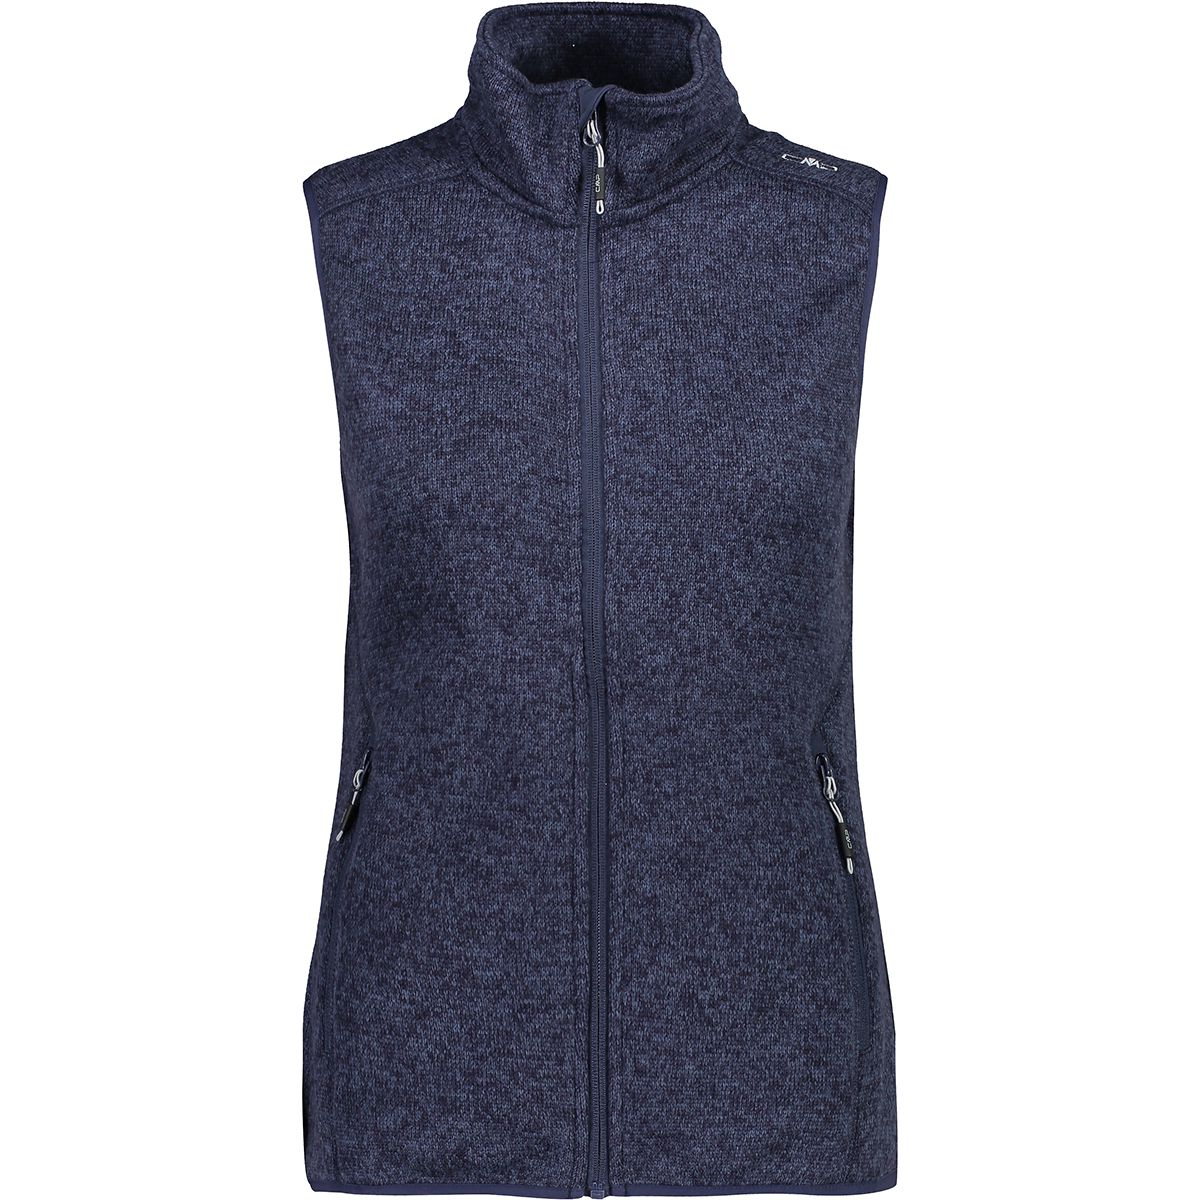 CMP Damen Strick Fleece Weste (Größe 5XL, Blau) | Fleecewesten > Damen